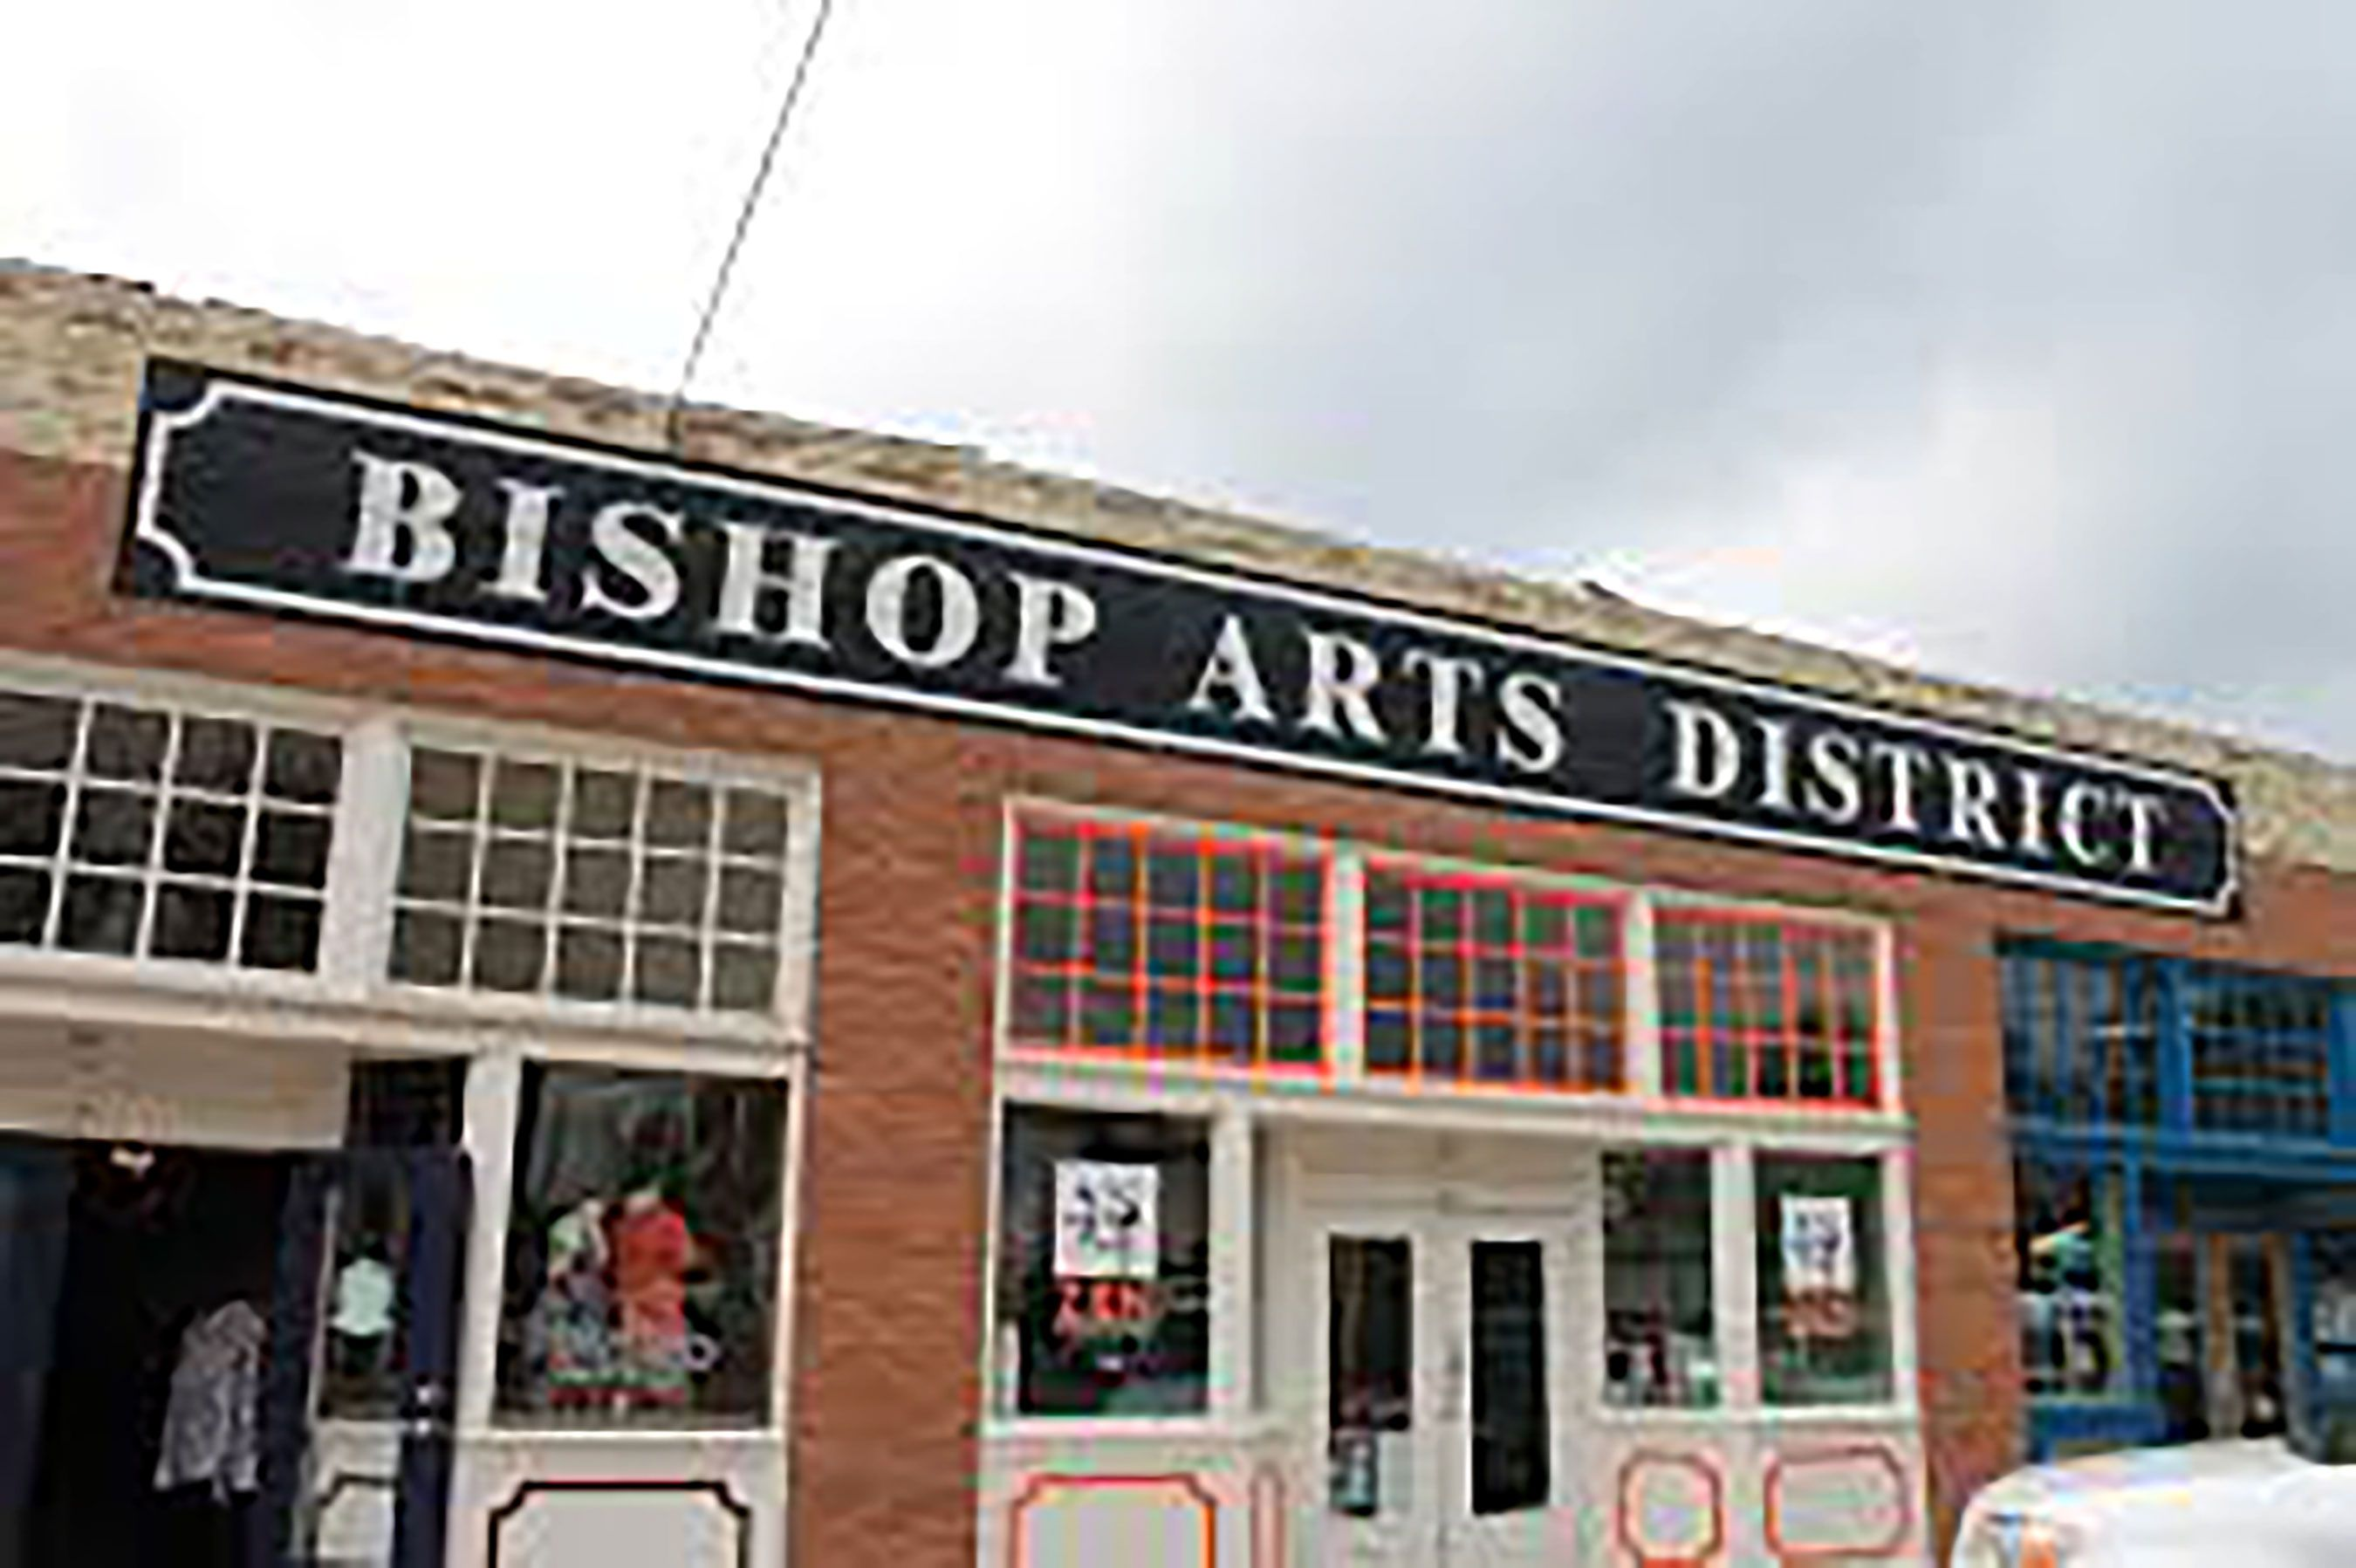 Bishop Arts District Real Estate